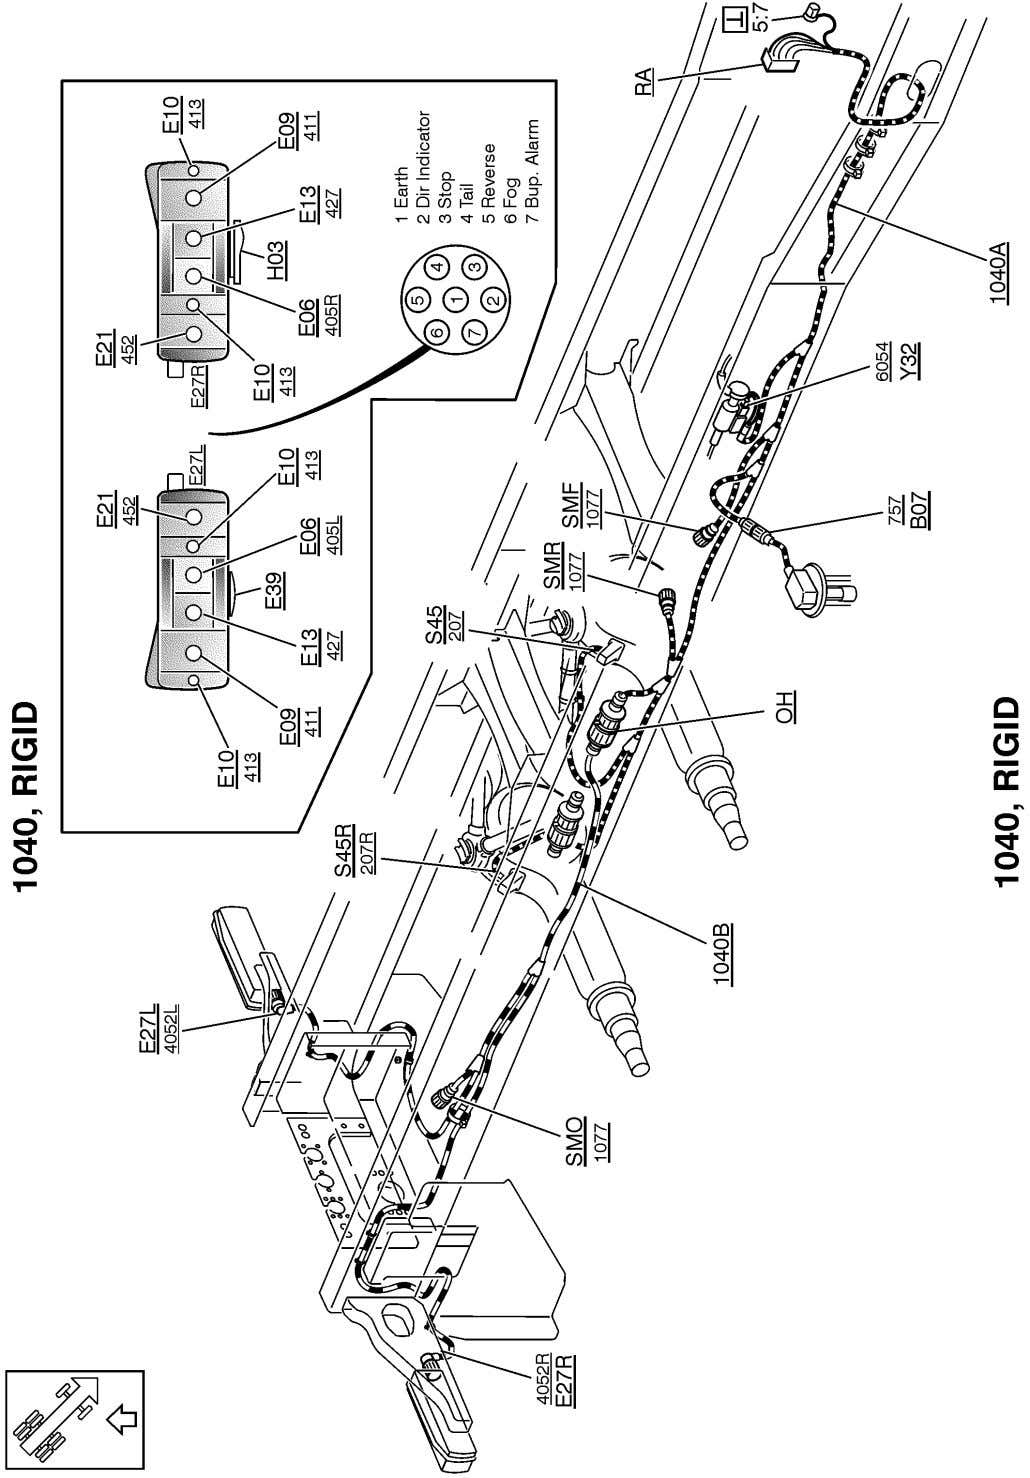 T3017728 Wiring diagram Page 167 (298)